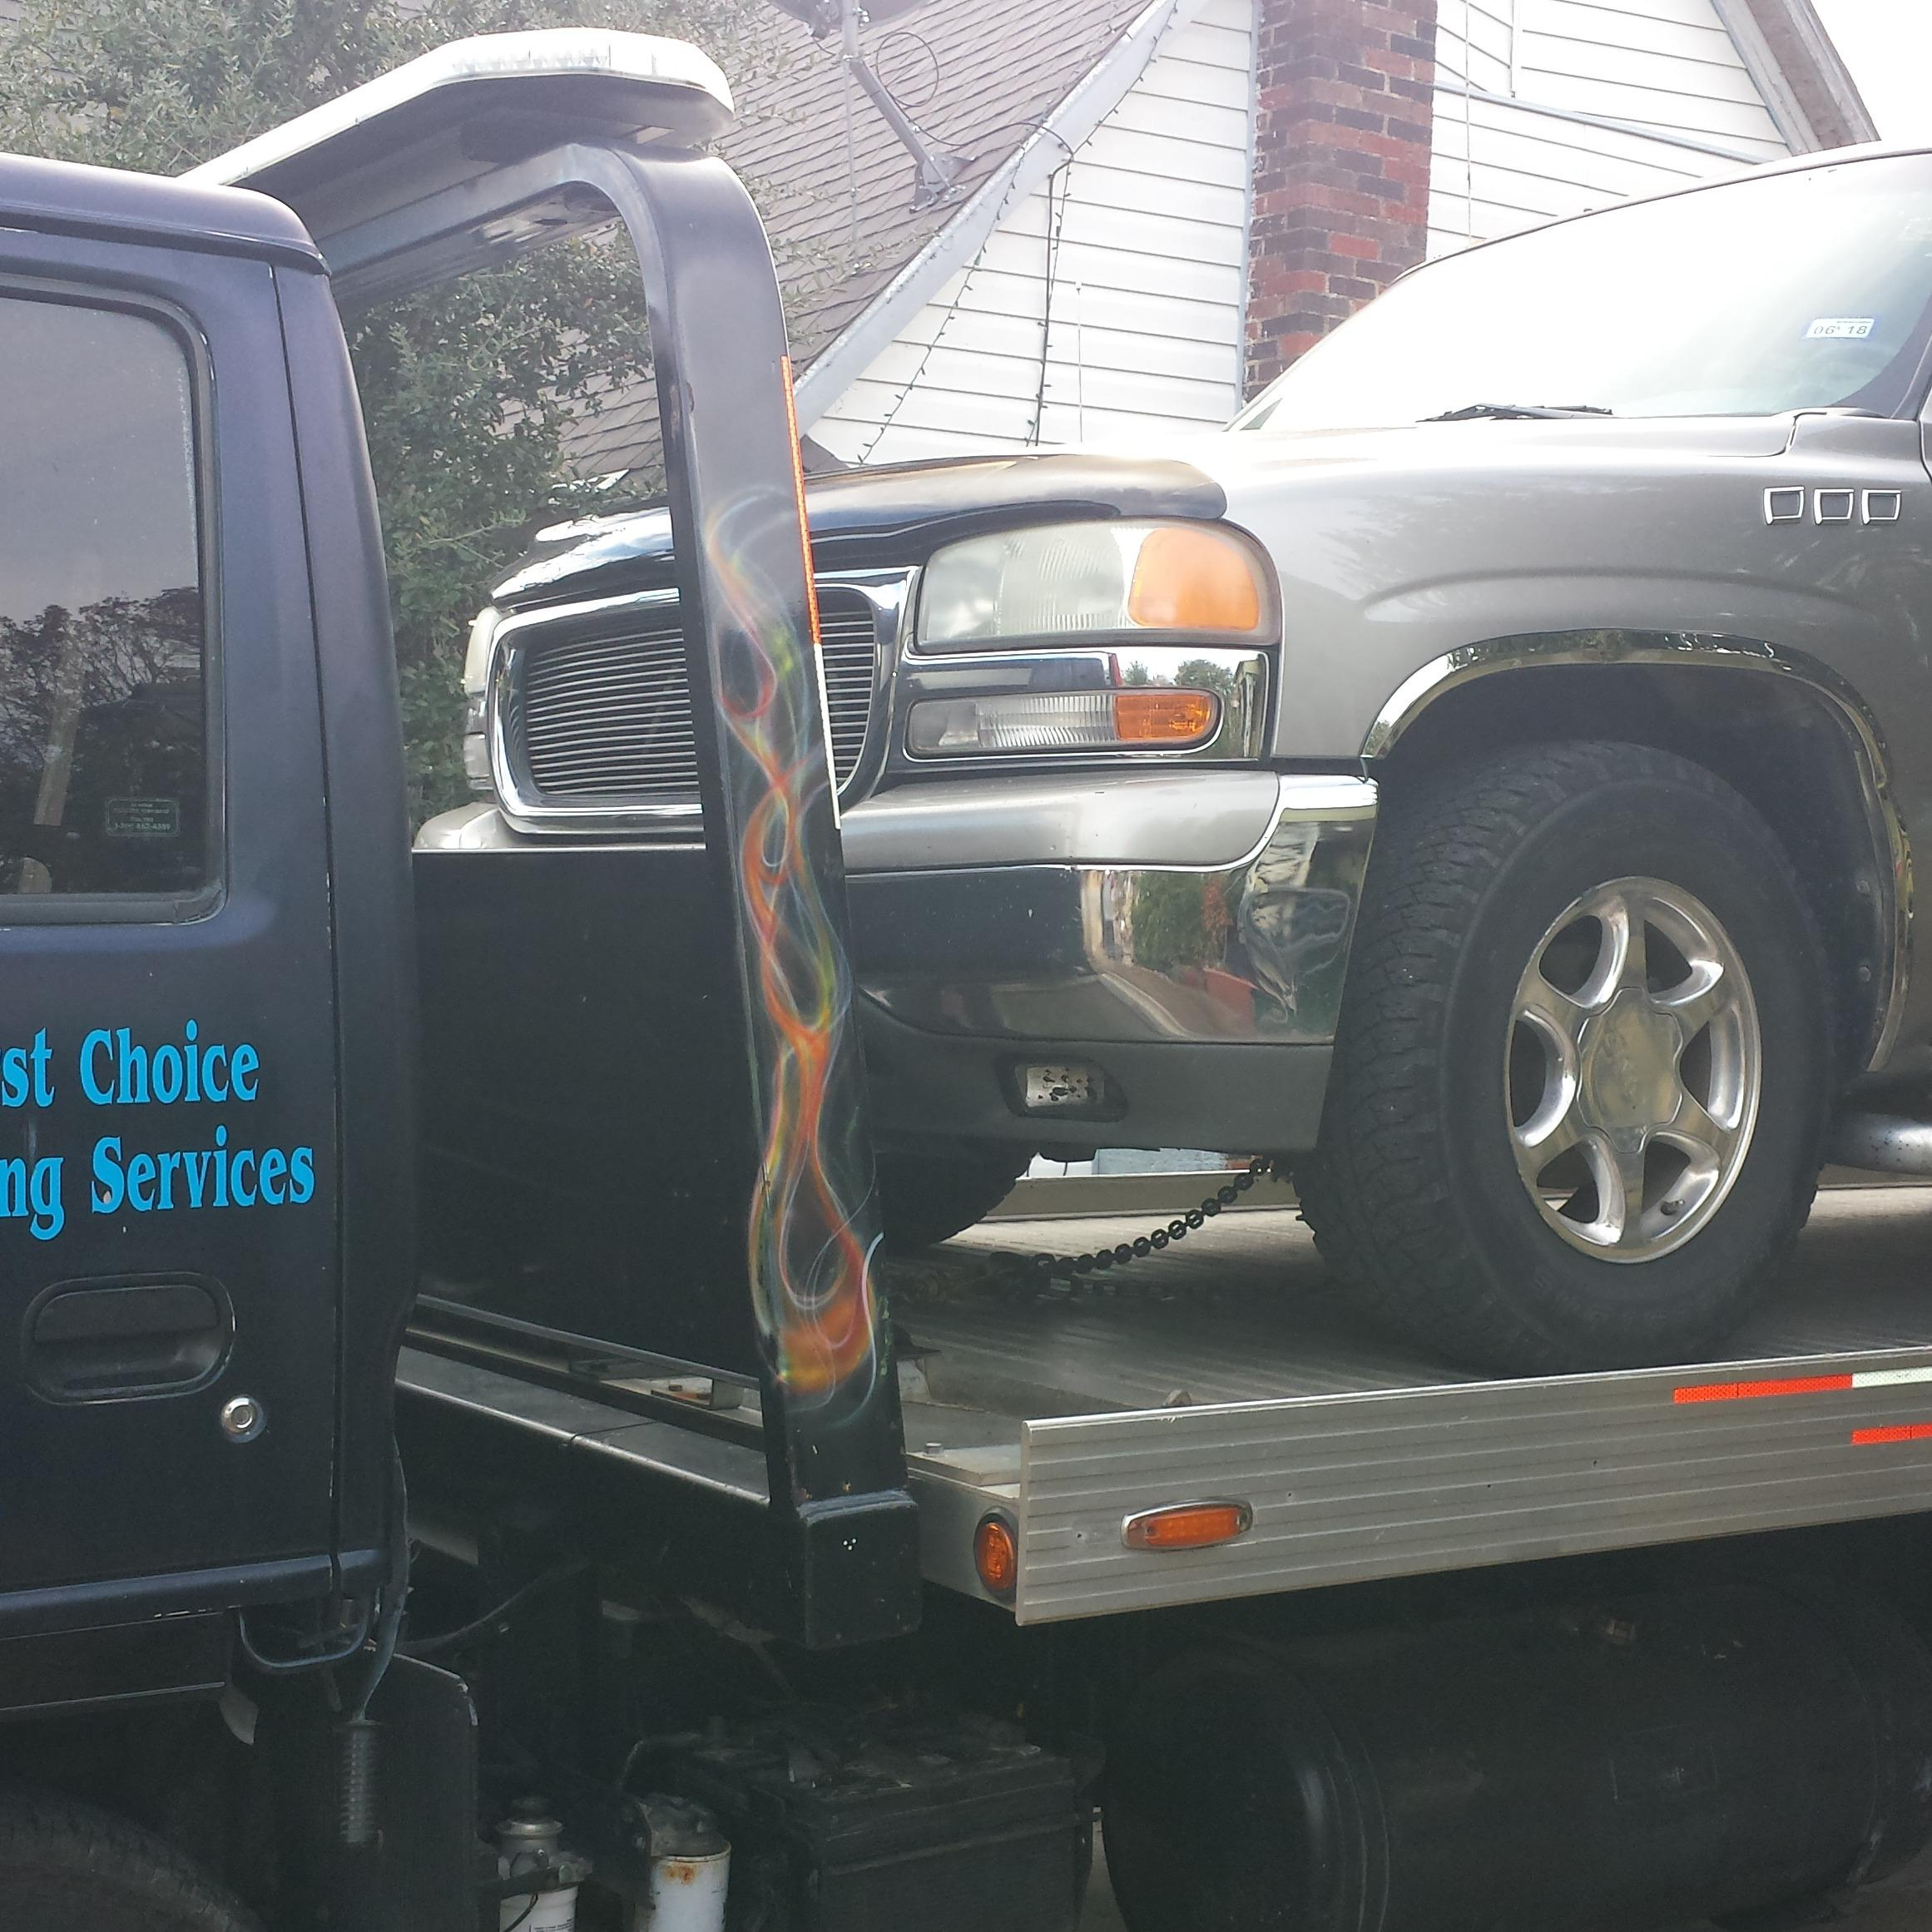 JJ First Choice Towing Services